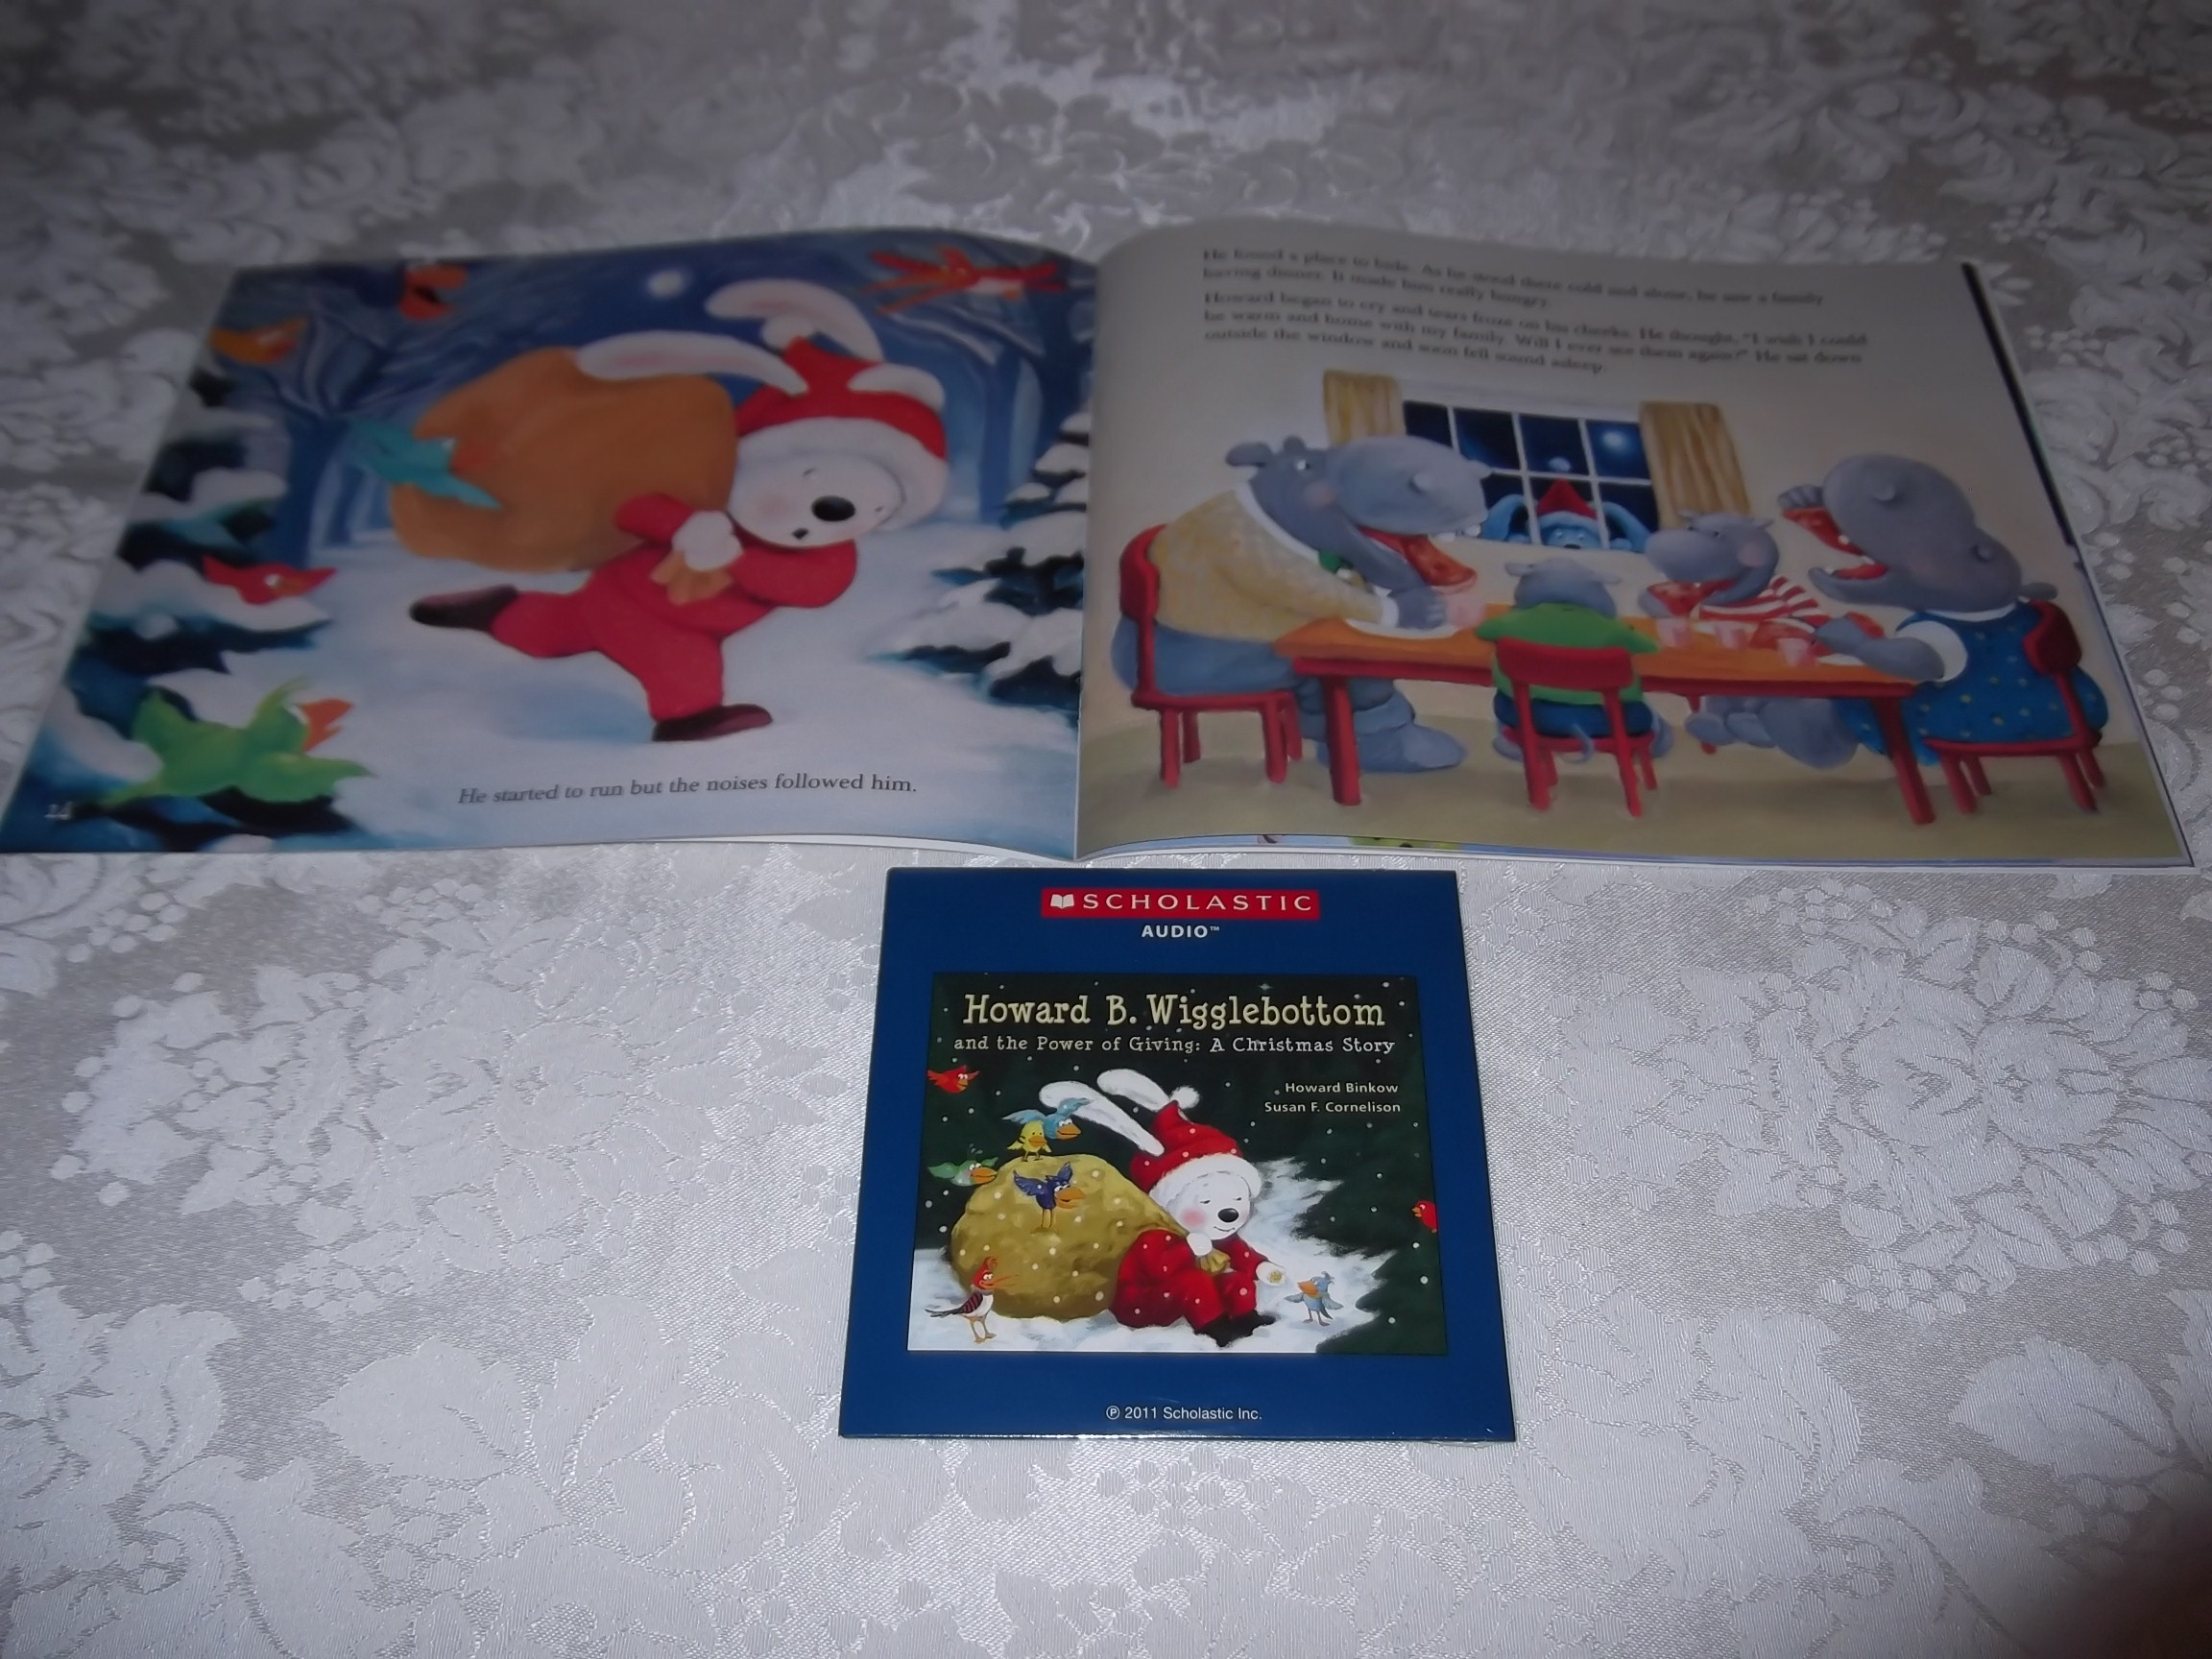 Image 7 of Howard B. Wigglebottom and the Power of Giving: A Christmas Story Audio CD & SC